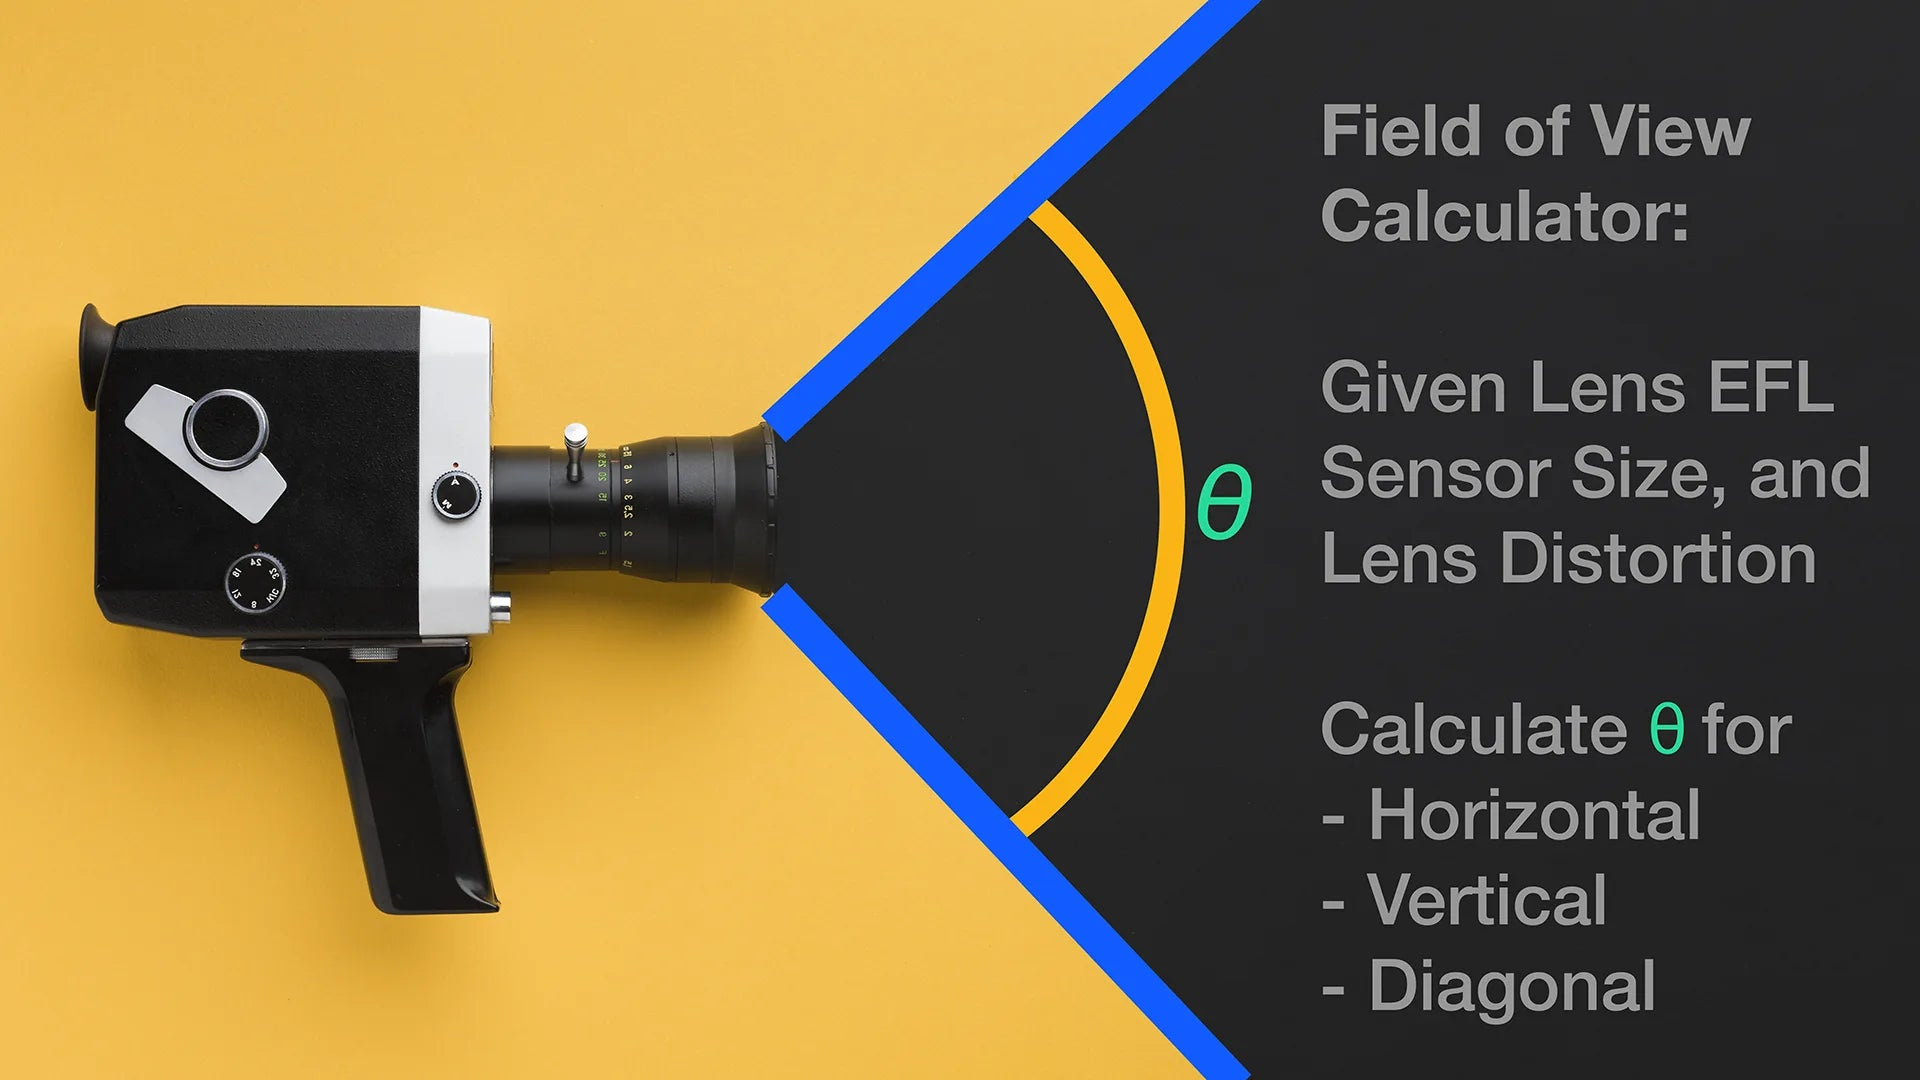 An FoV Calculator for Vision System Cameras